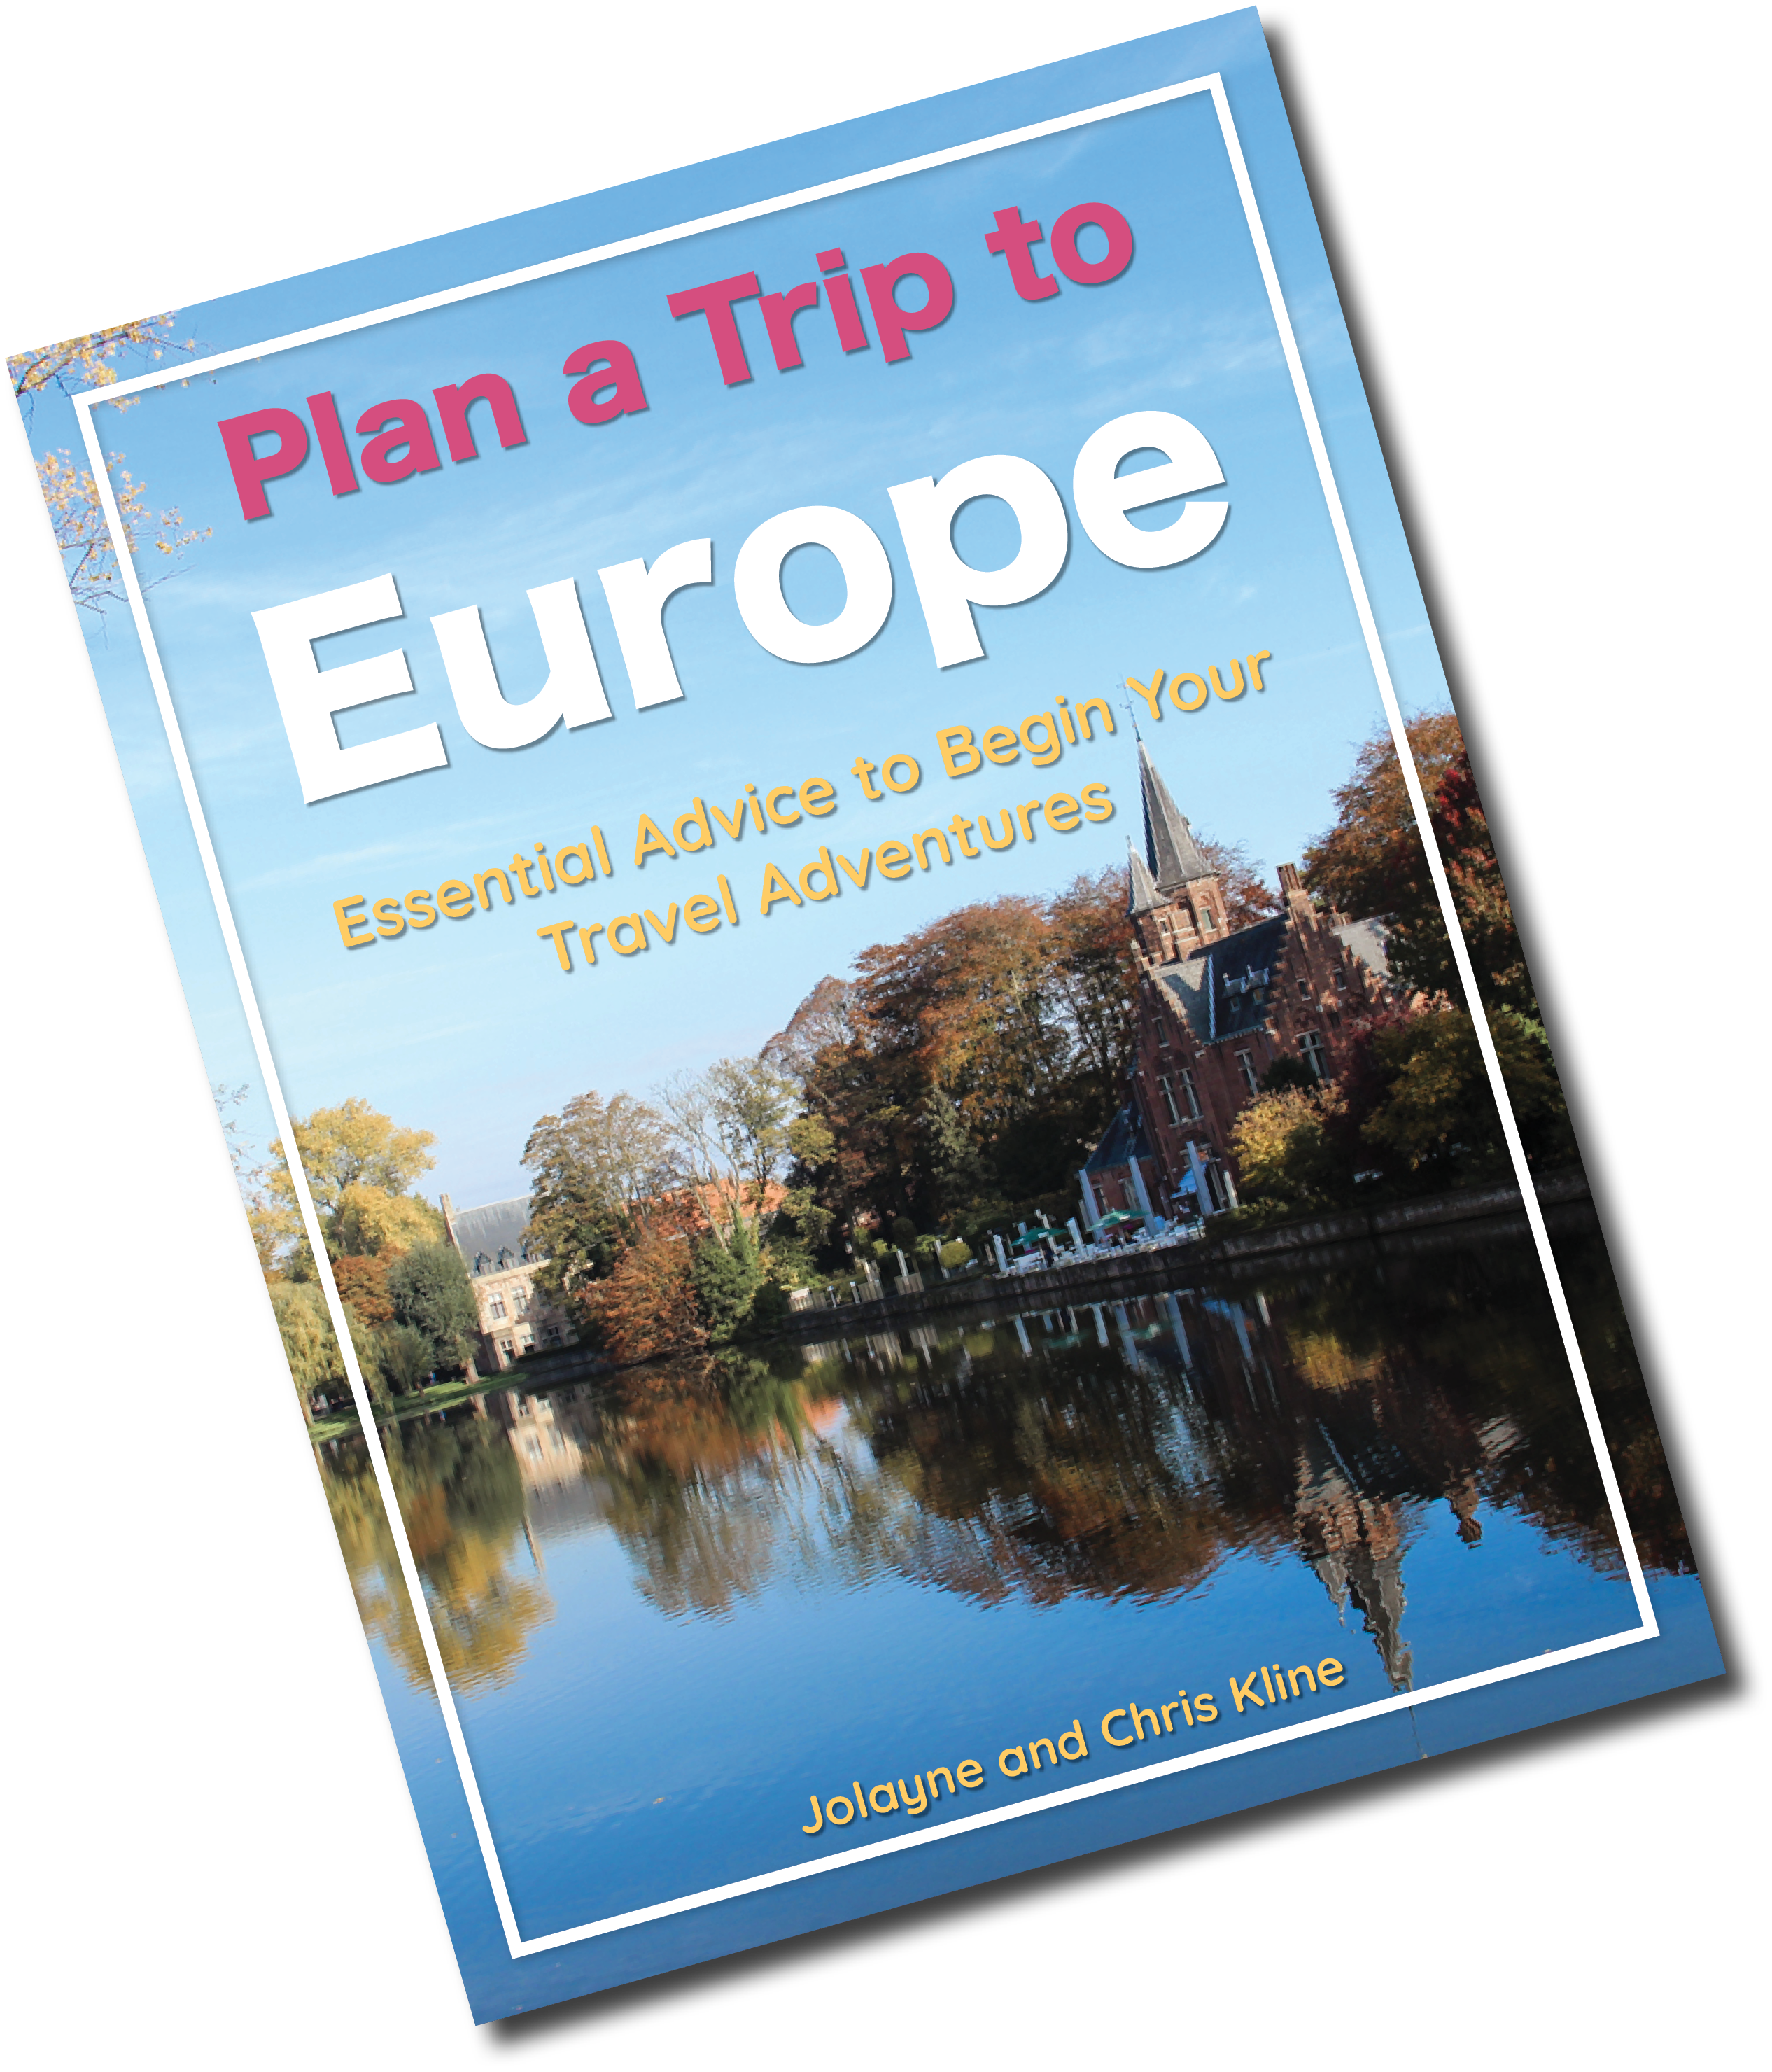 Travel, Plan a Trip to Europe Ebook with transparent background